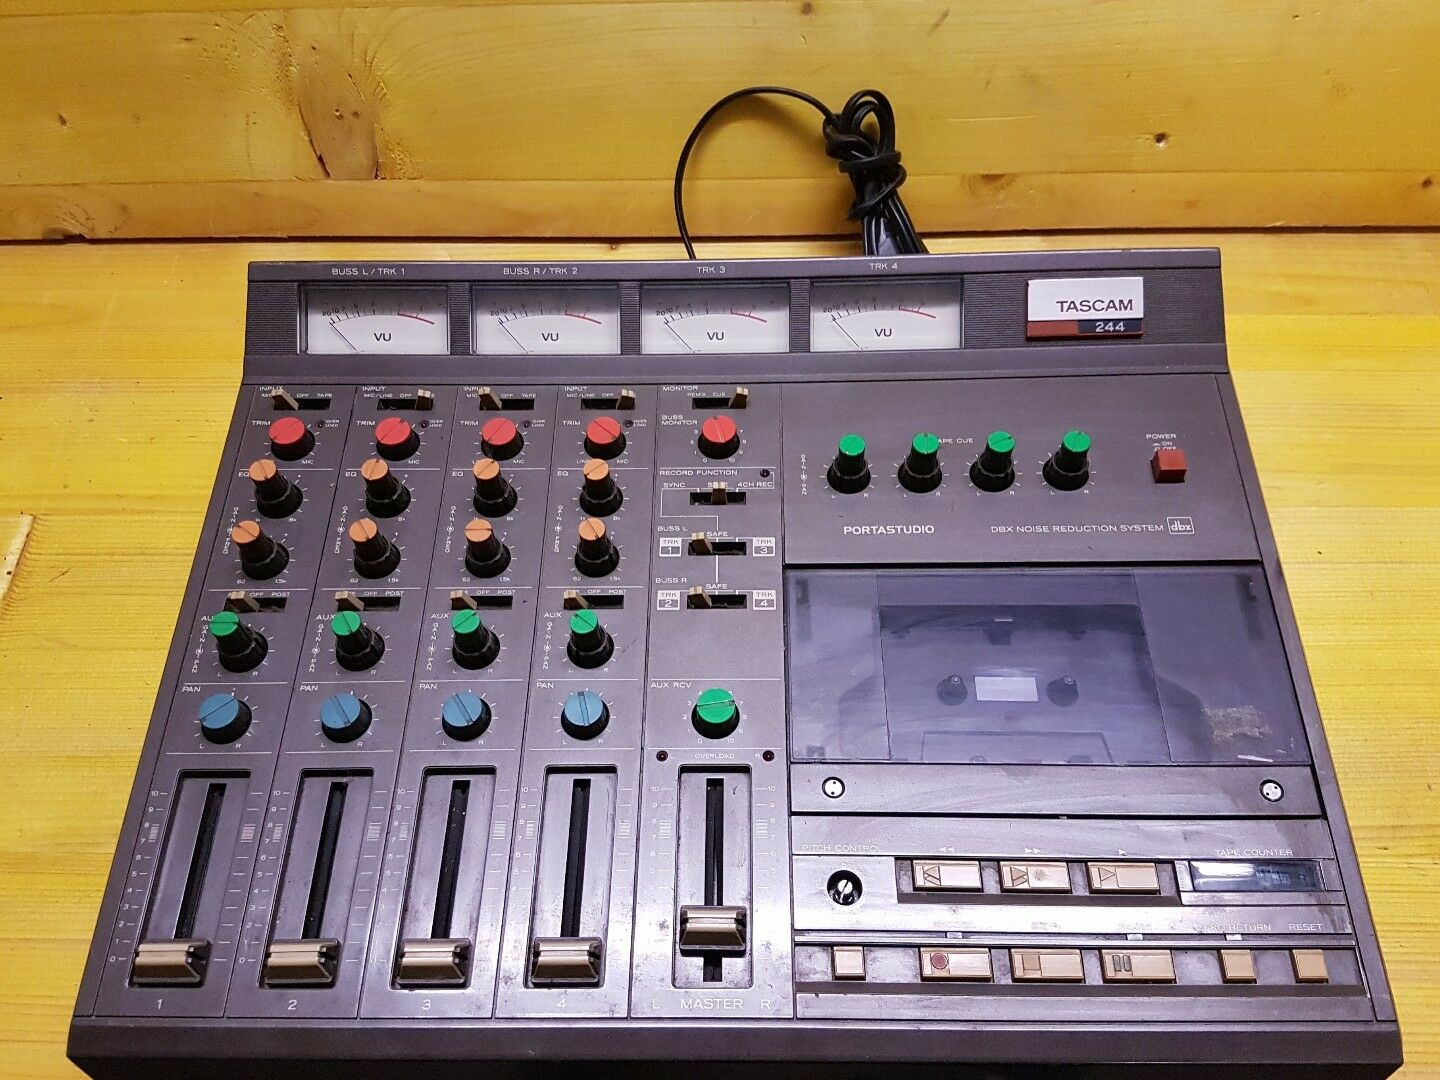 TASCAM PORTASTUDIO 244 TAPE RECORDER